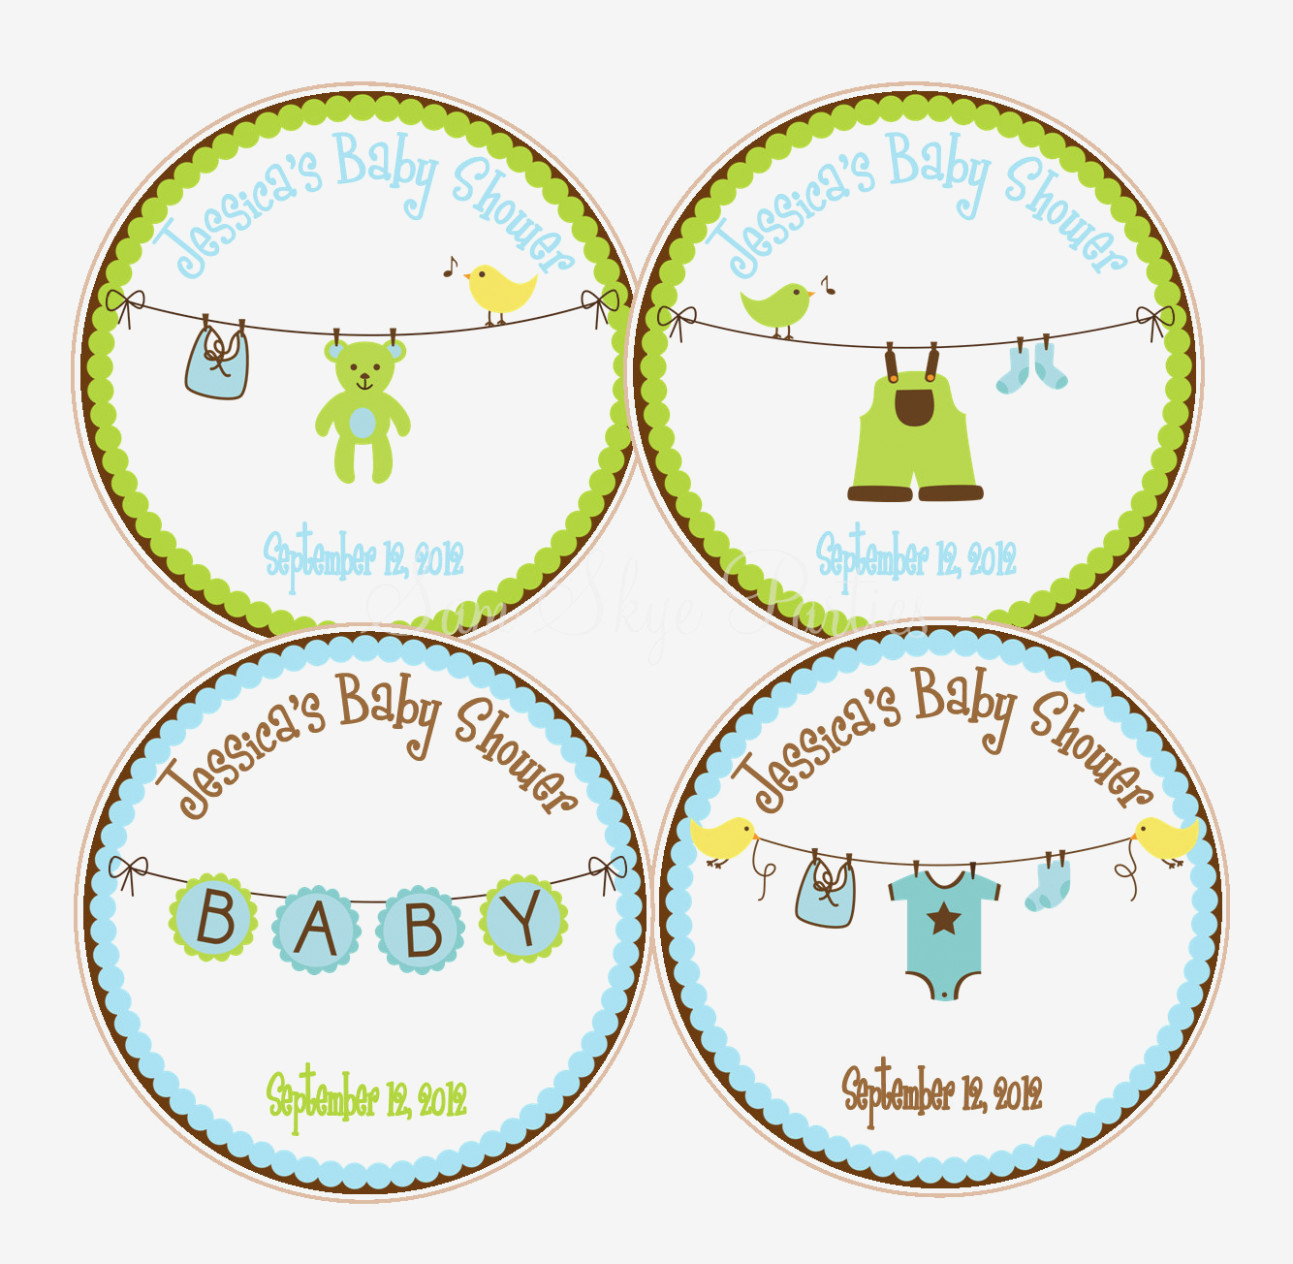 Baby Shower Labels Templates Favor Wording Label Ideas Tags Diy Free - Free Printable Baby Shower Favor Tags